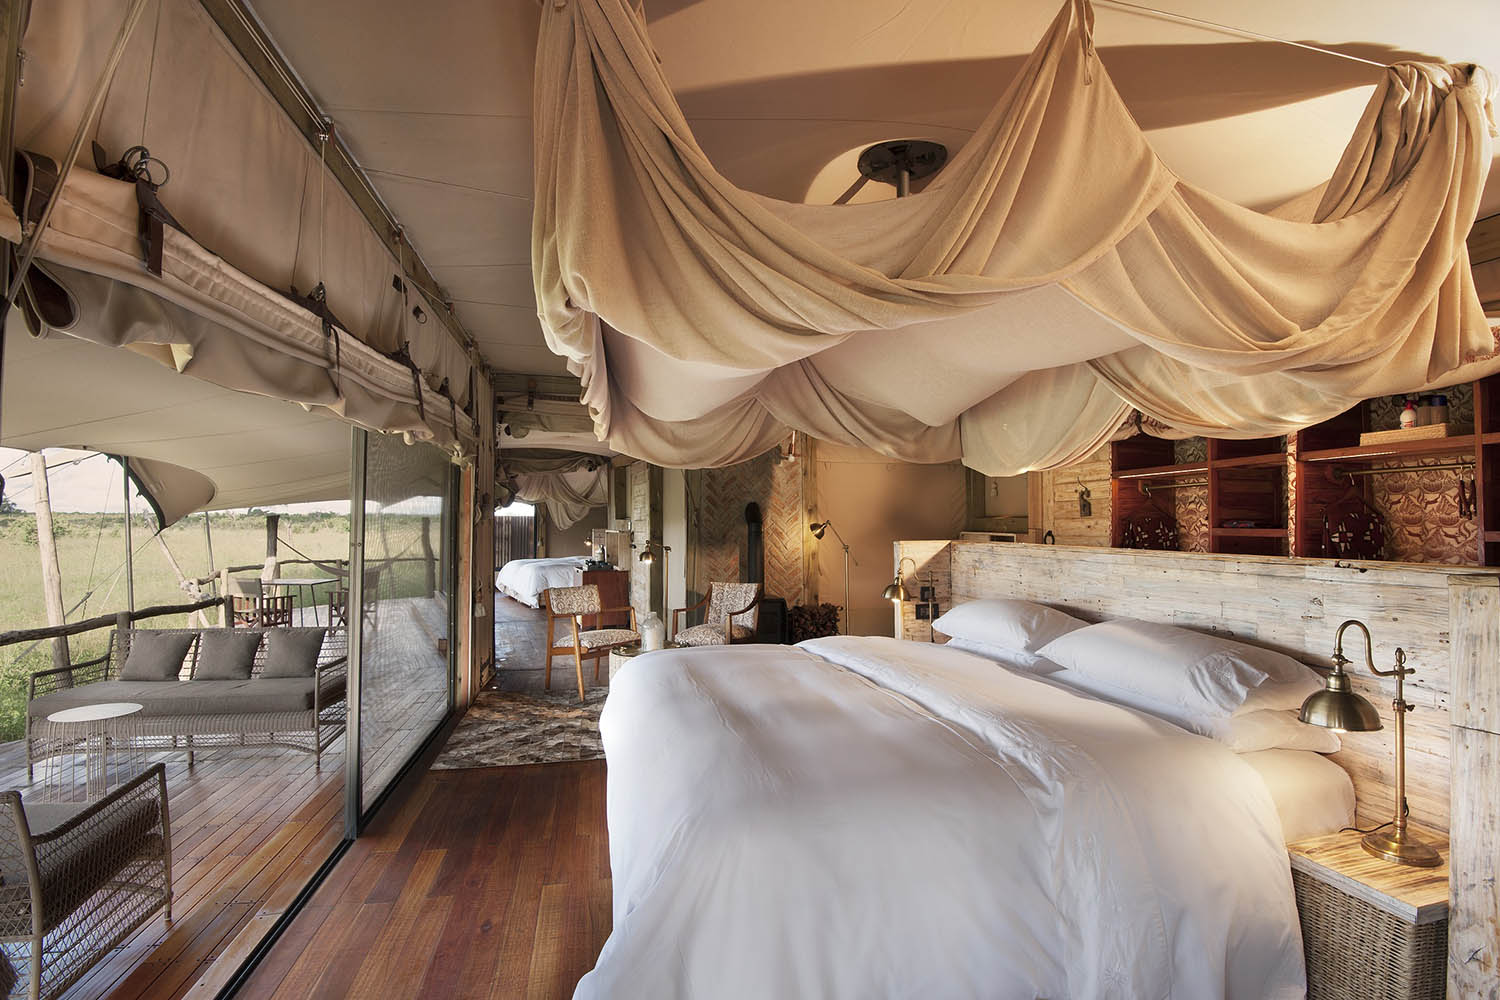 somalisa acacia zimbabwe-lodges-zambia-in-style-safaris-wildlife-africa-hwange-national-park-main-area-bed